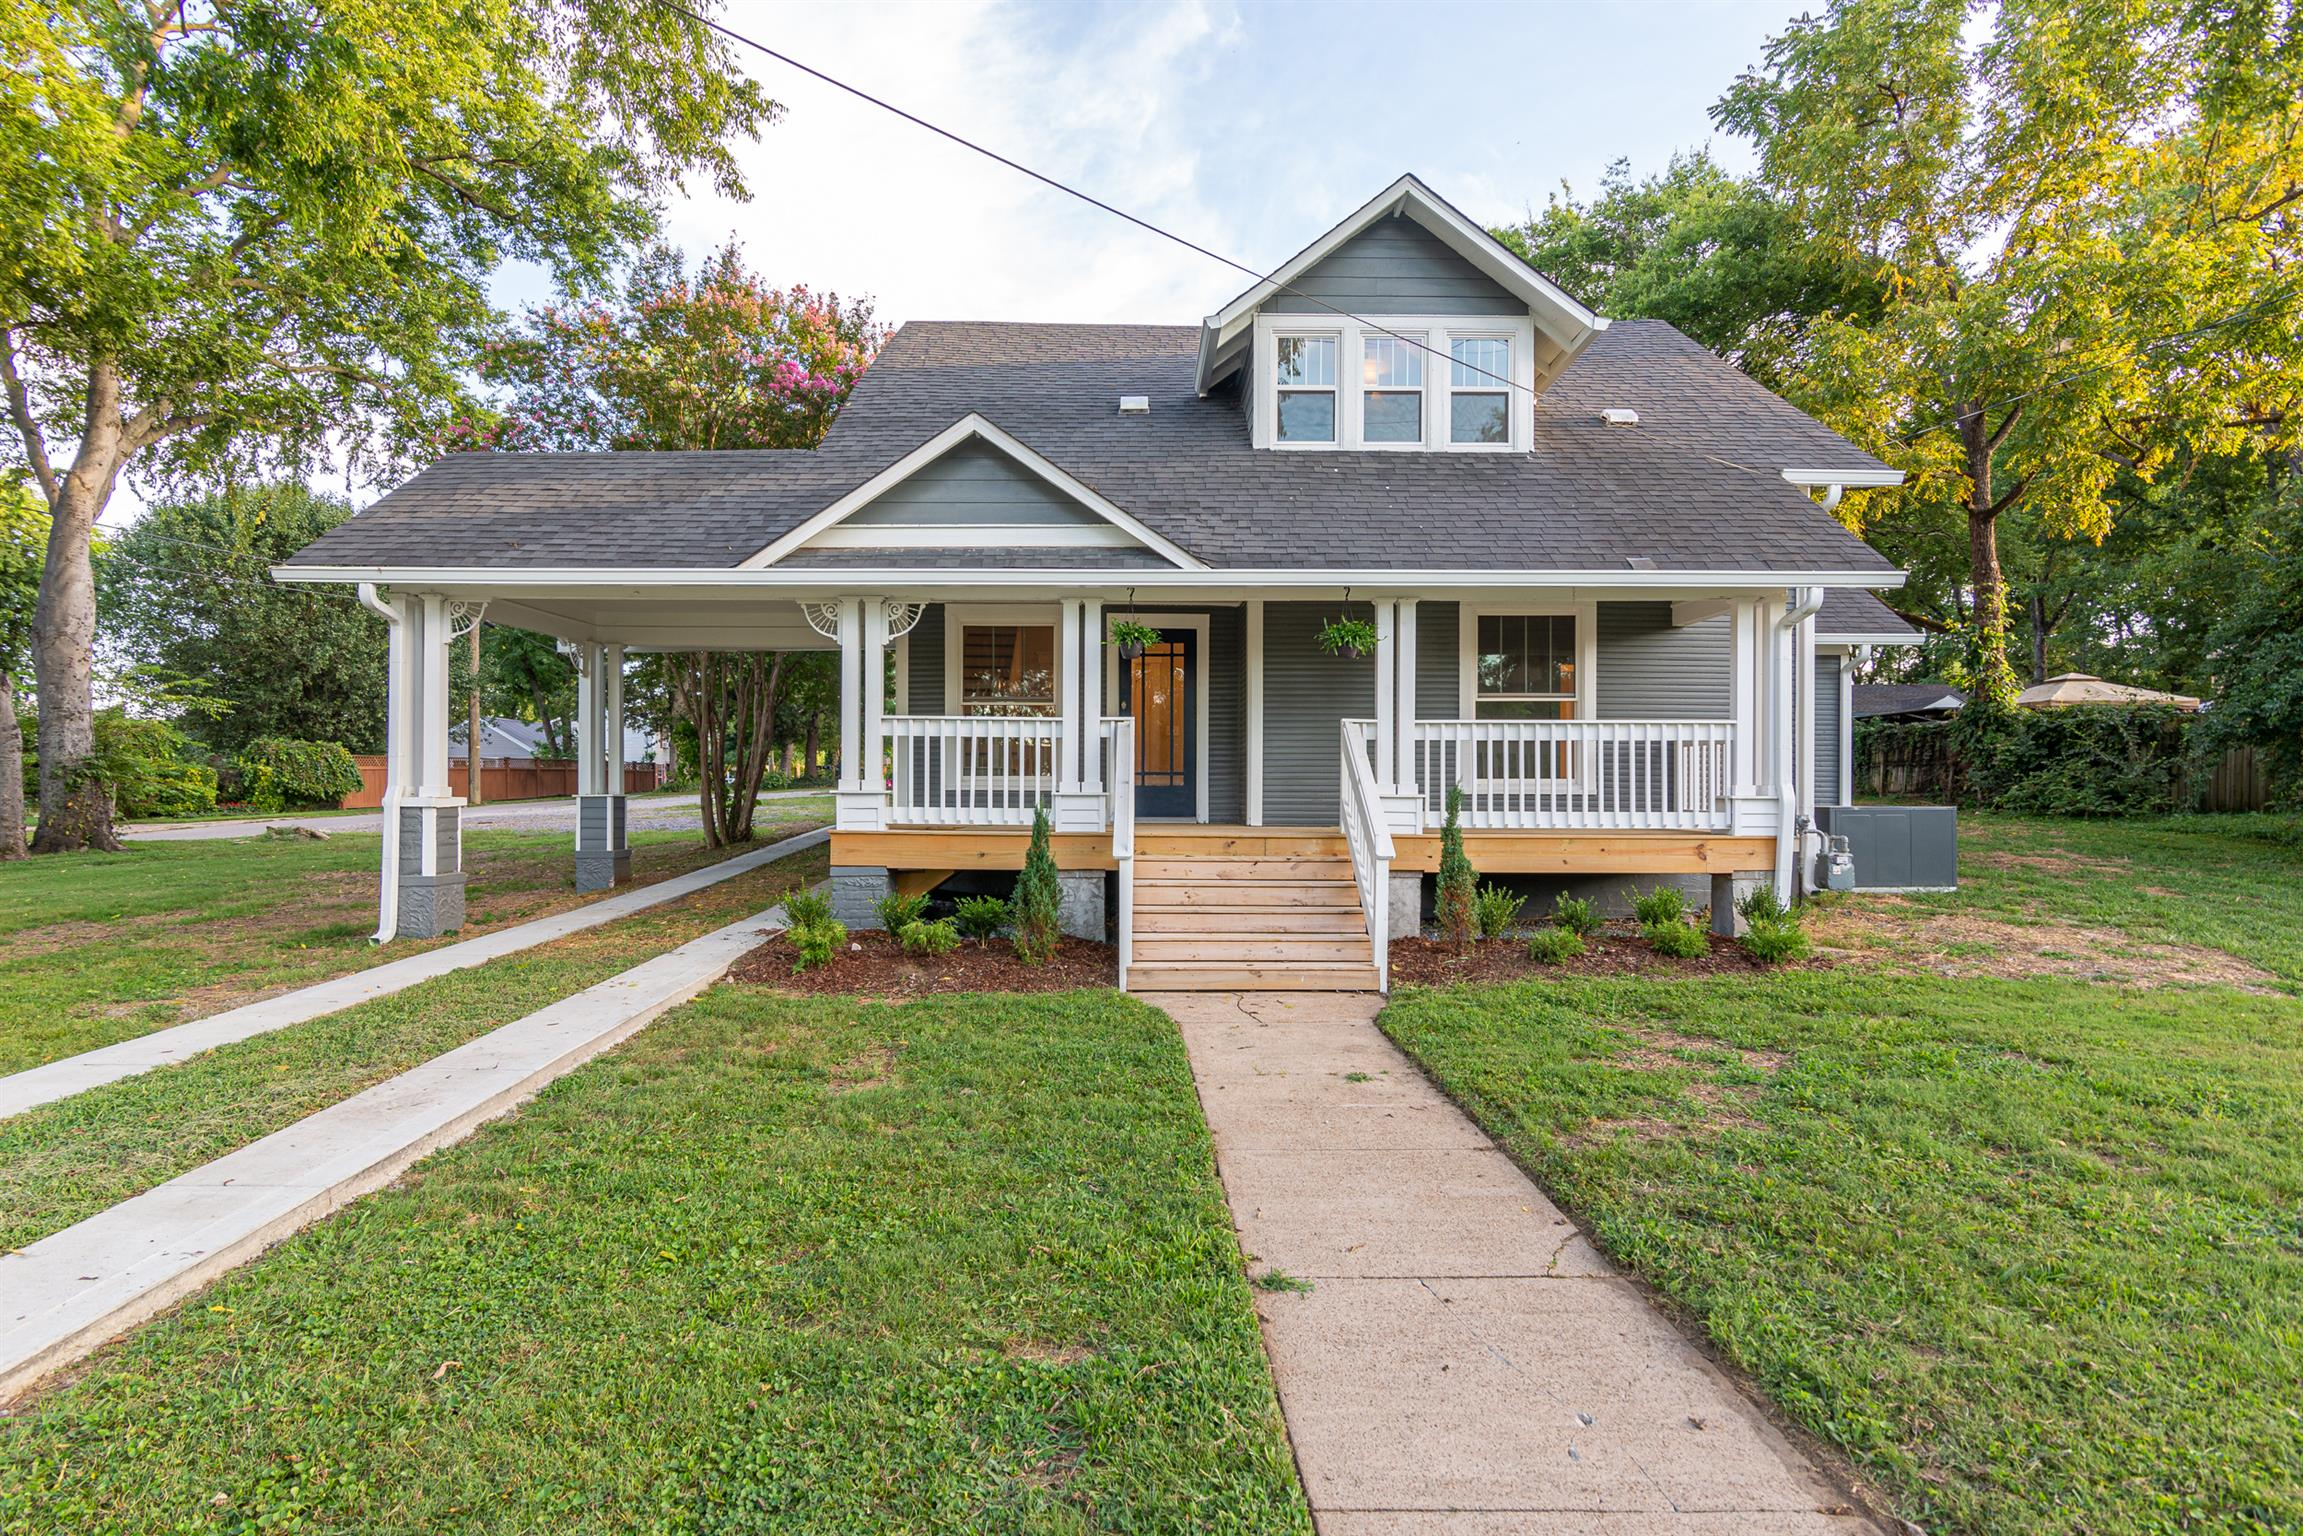 6211 Robertson Ave, Nashville, TN 37209 - Nashville, TN real estate listing